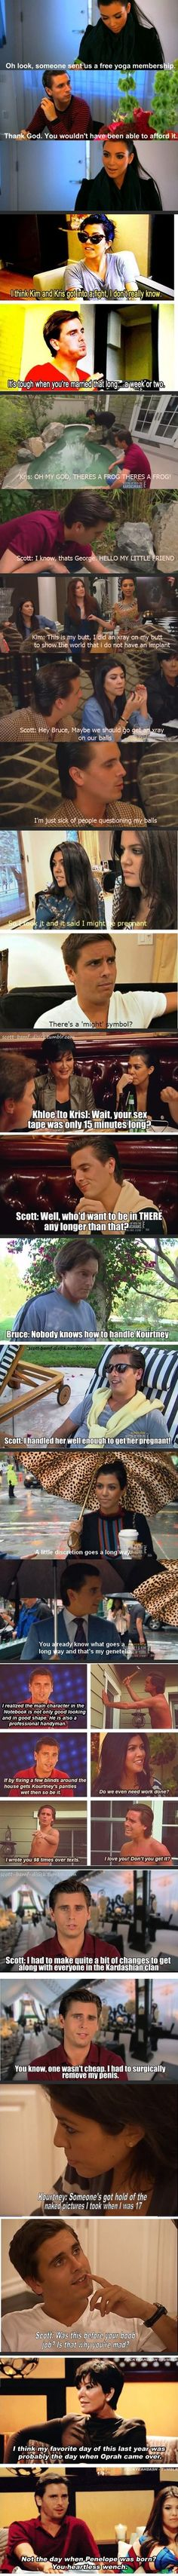 Scott Disick deserves a show of his own. He is hilarious!!!